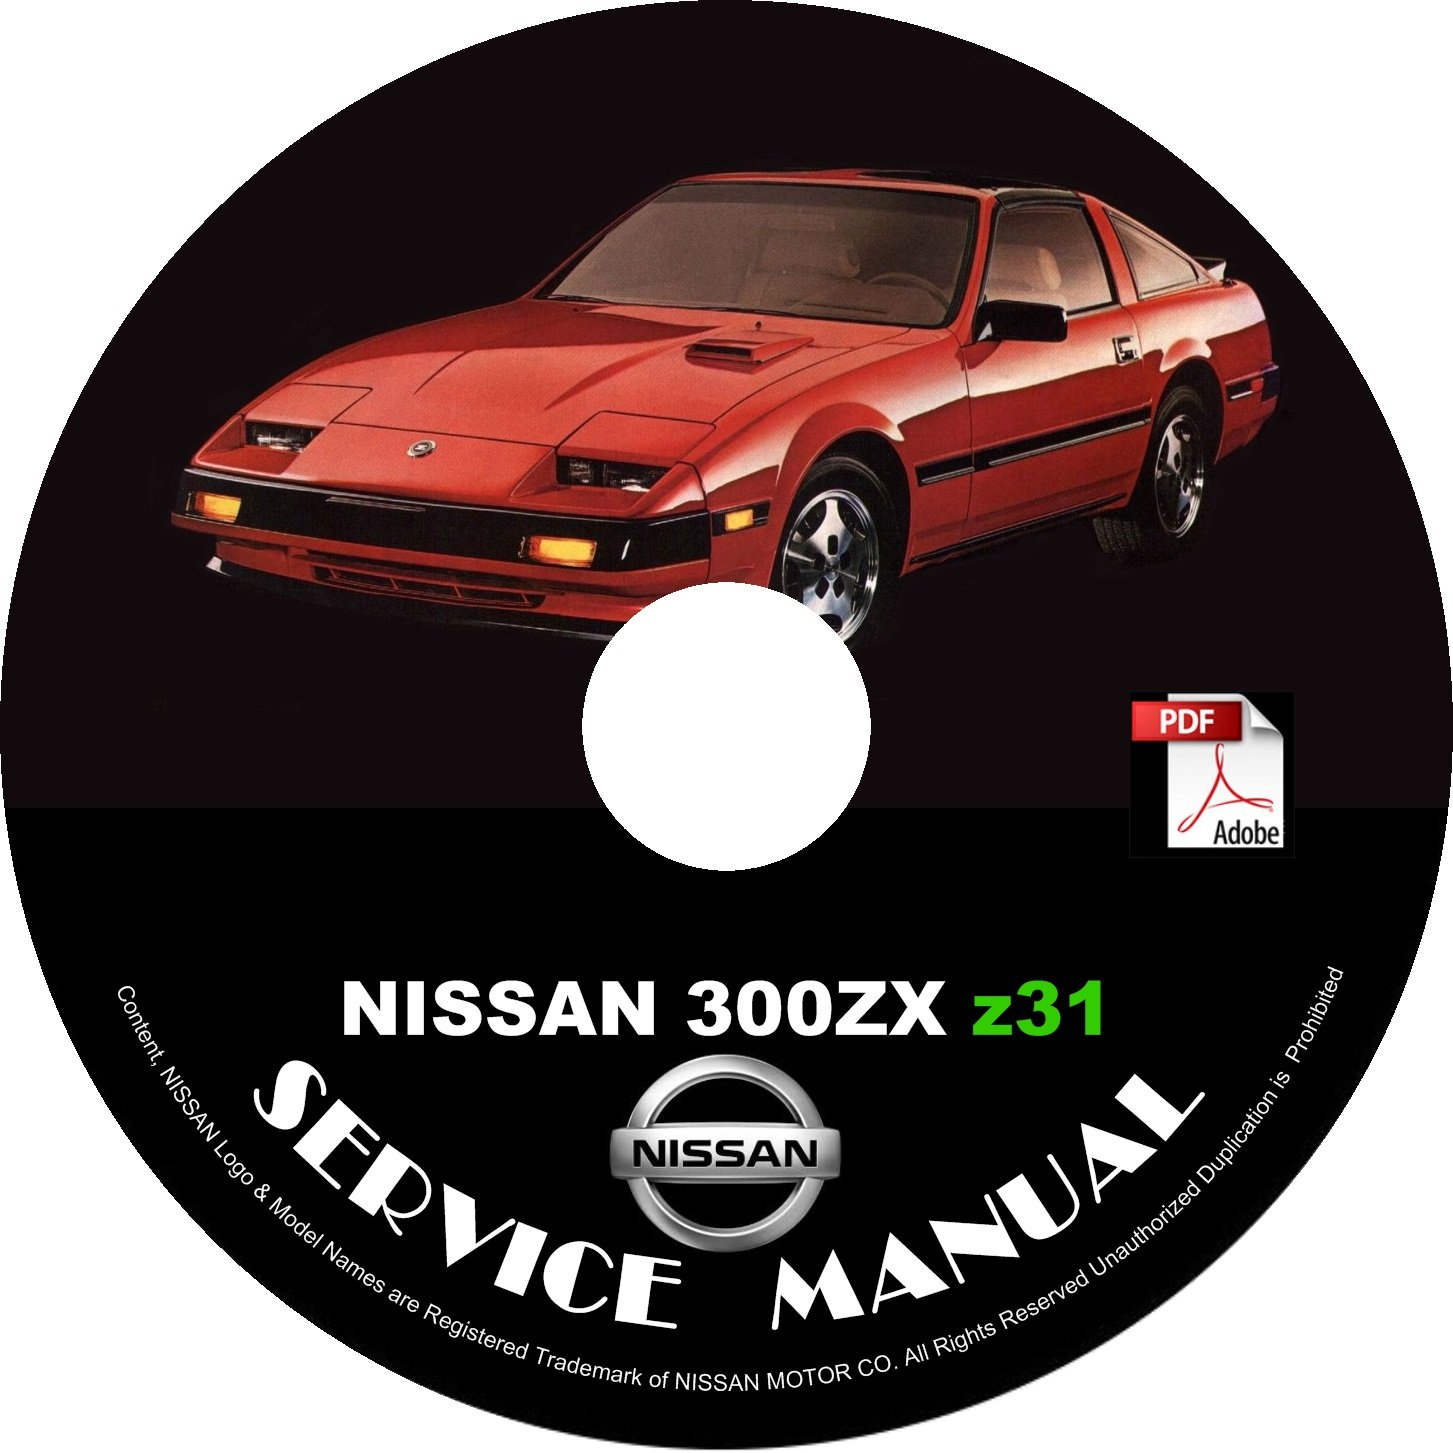 1987 Nissan 300ZX  Z31 Service Repair Shop Manual on CD Repair Rebuild Fix